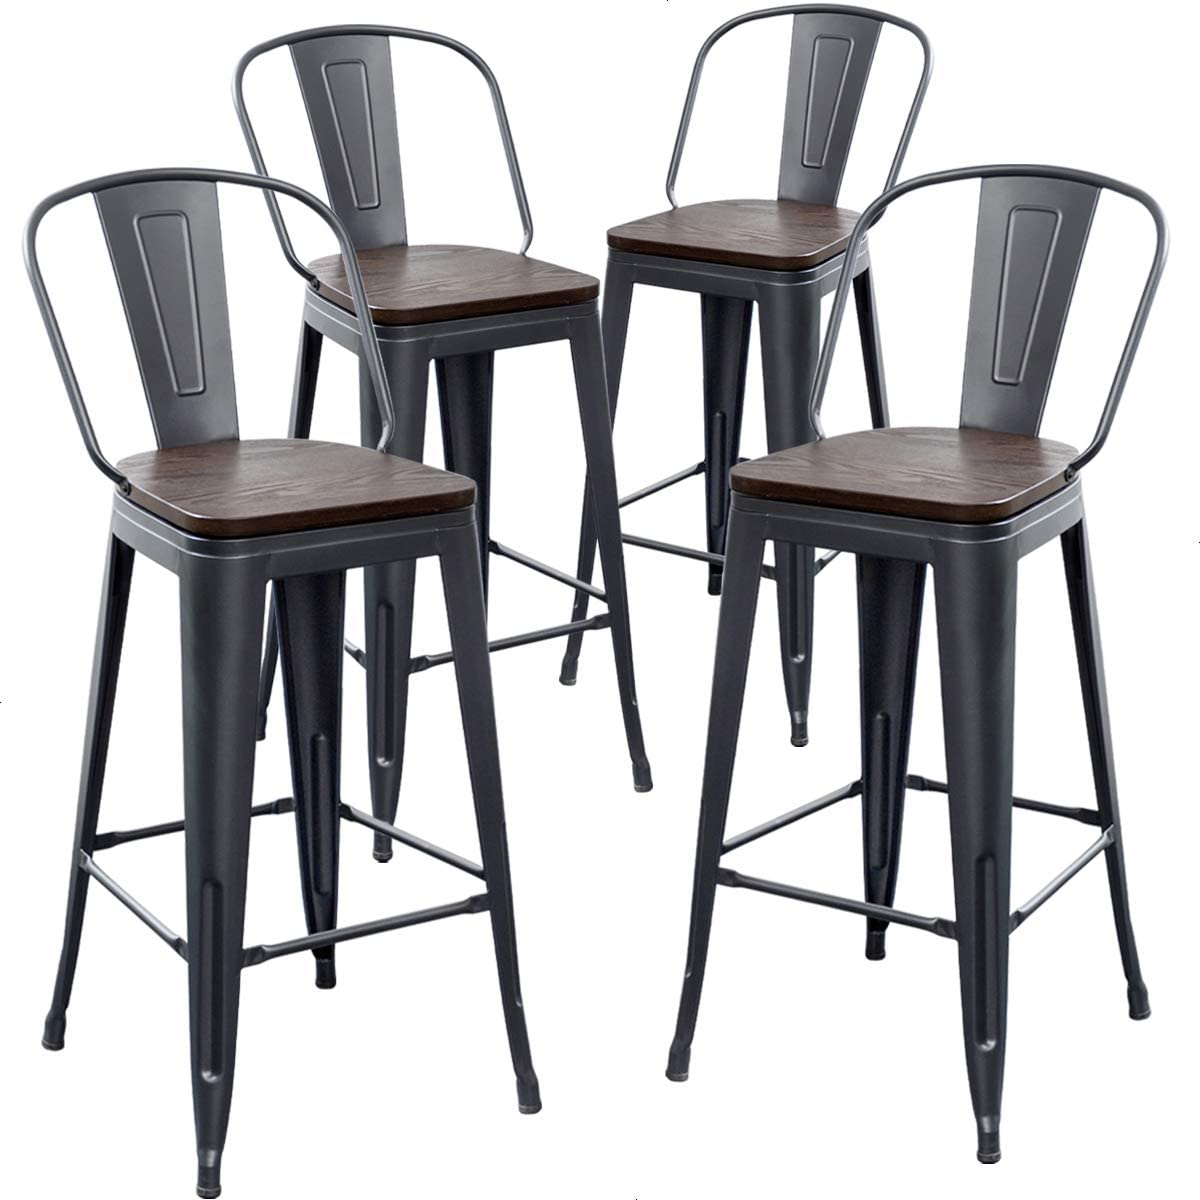 TONGLI Counter Height Stool with Backs Counter Stools Metal Bar Stools Set of 4 Dining Kitchen Chairs High Back 30 Inches Bar Chairs Stools Matte Black